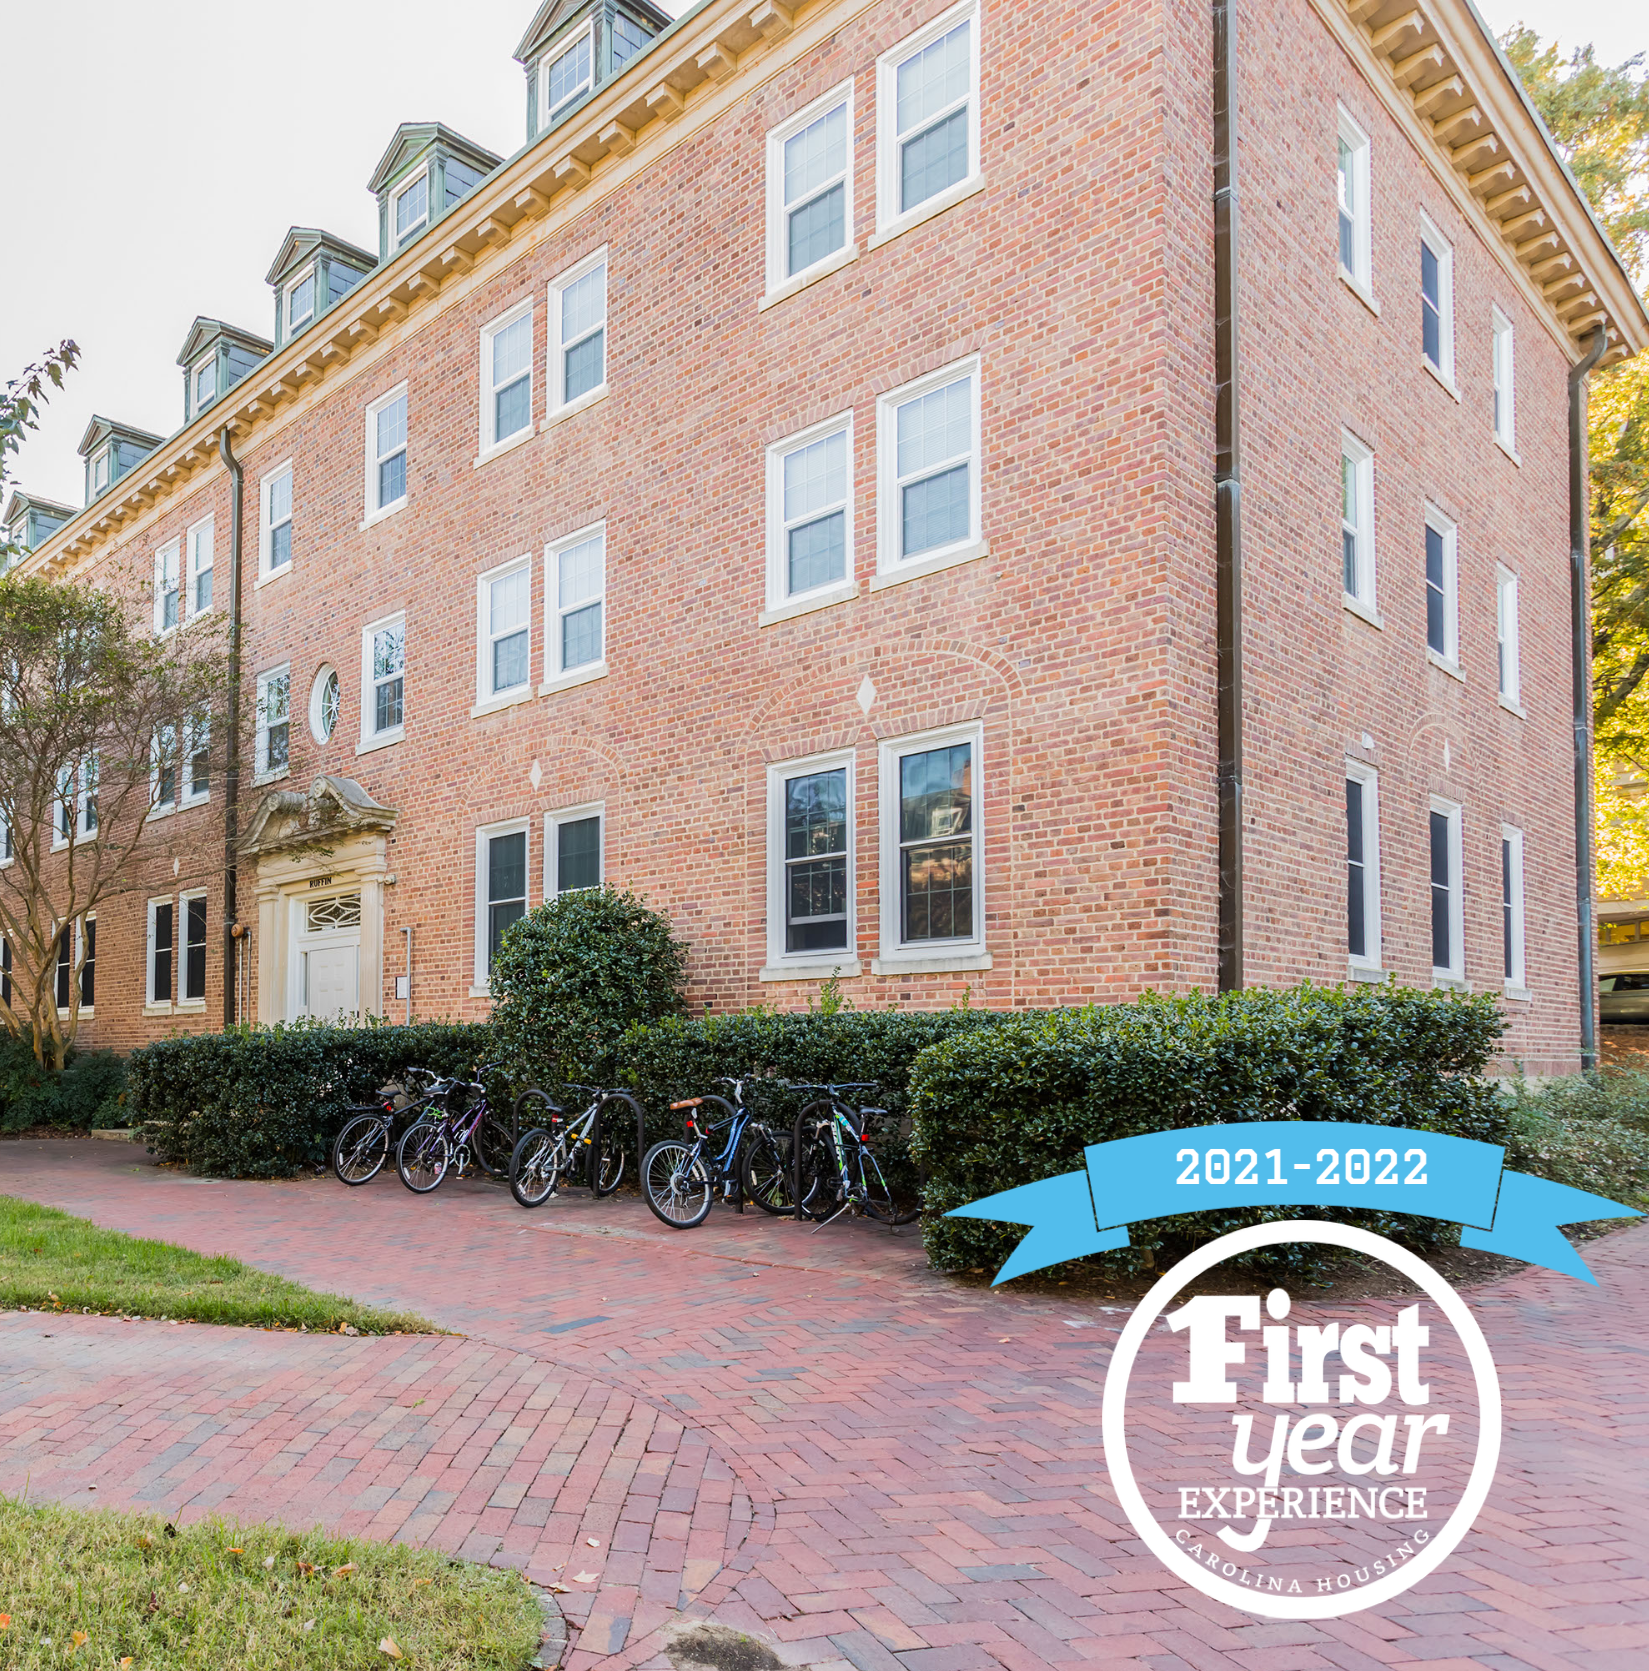 Ruffin Jr. residence hall with the First Year Experience logo in the right corner.